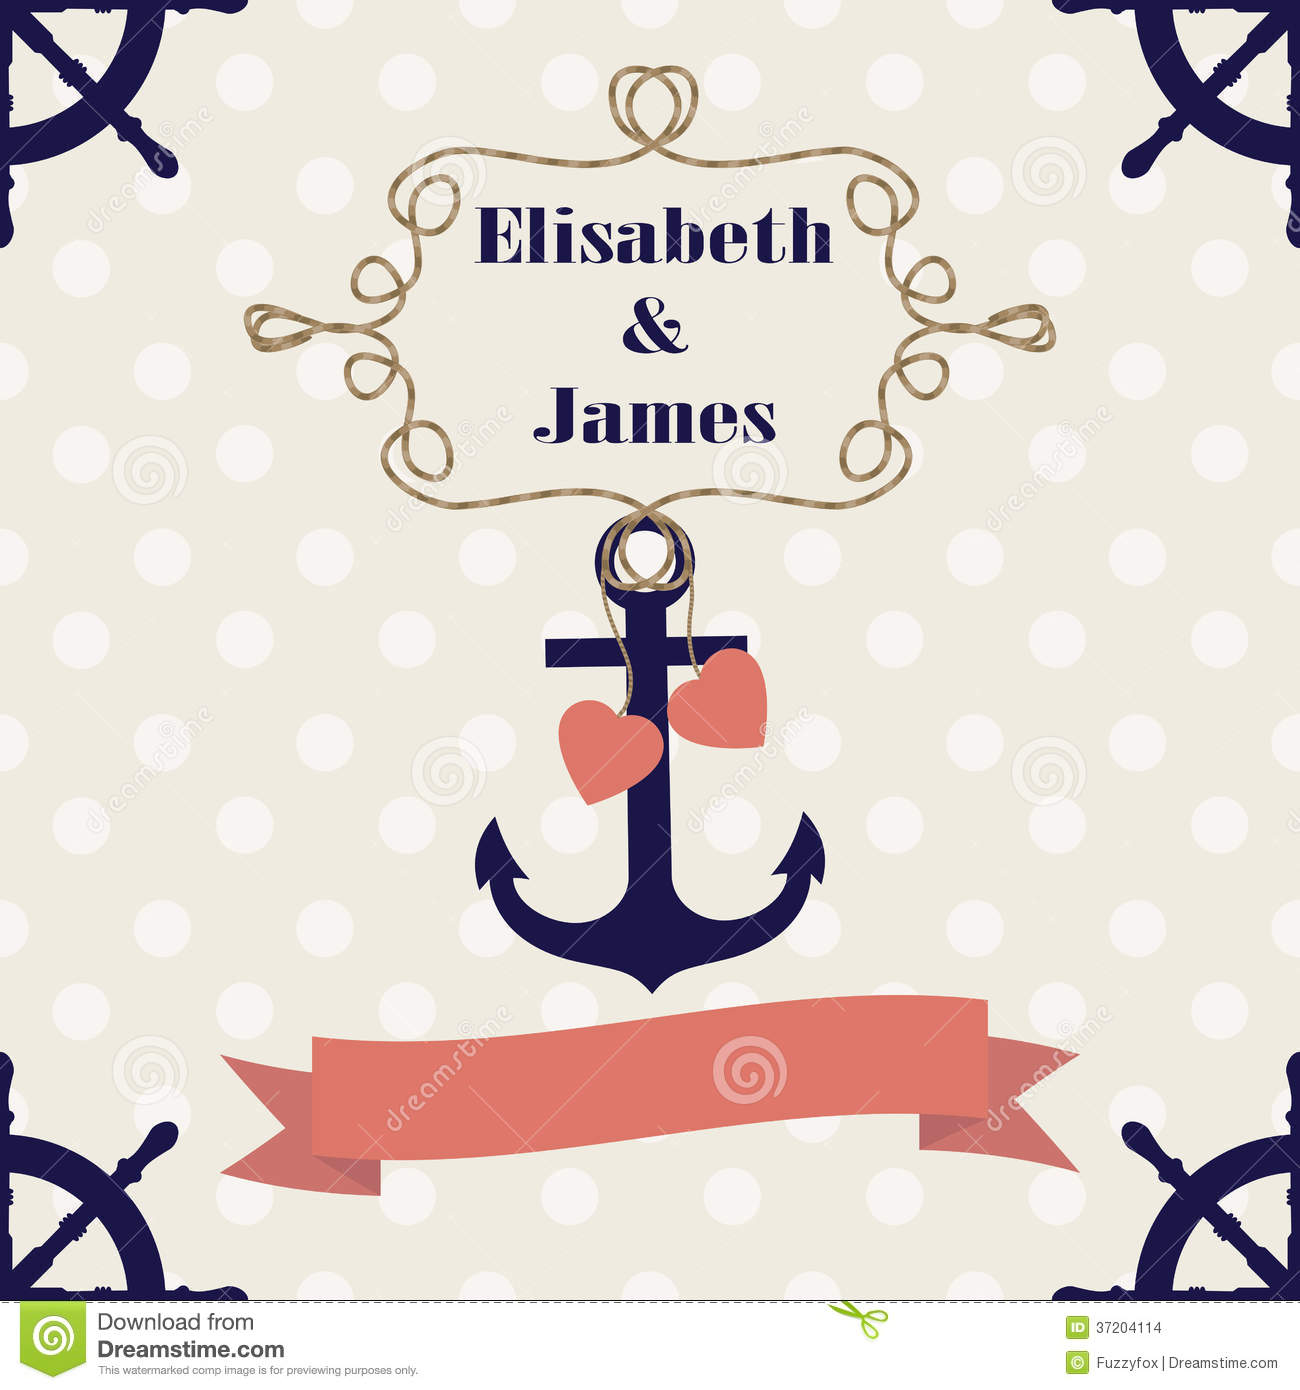 Wedding Nautical Invitation Card With Anchor Stock Vector - Image: 37204114